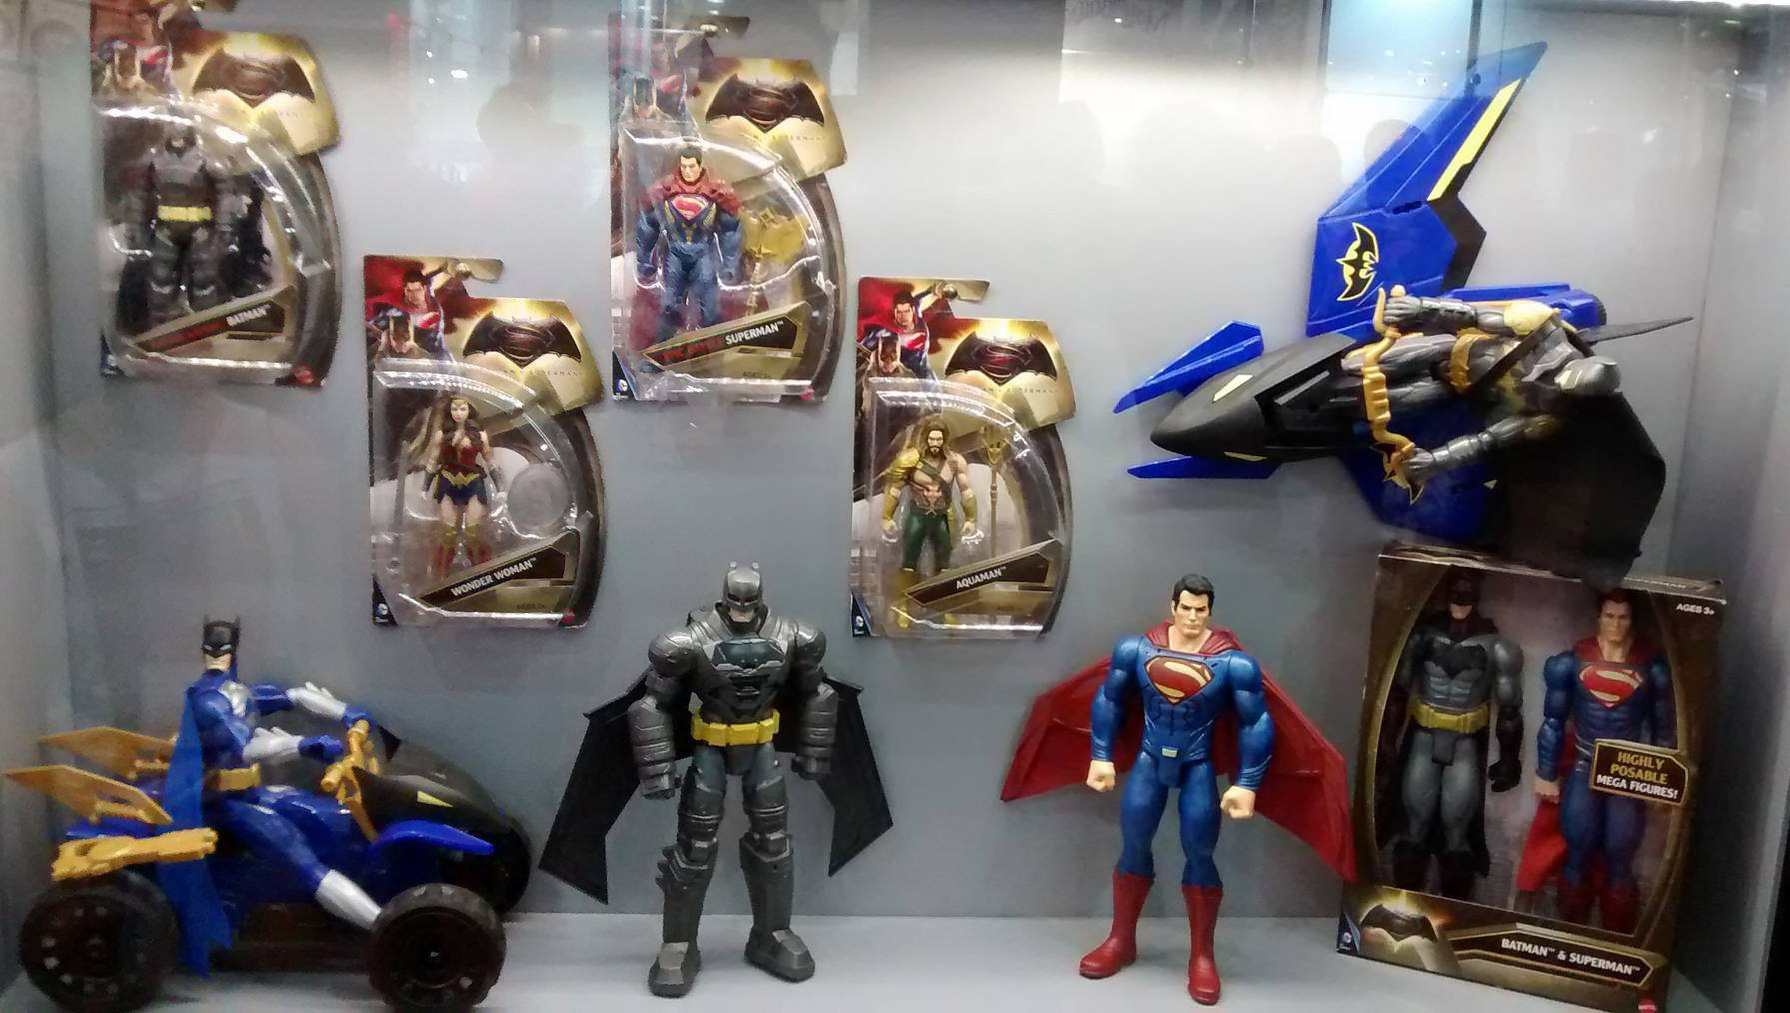 Action Figures from 2015 San Paolo Brazil Comic Con Experience (CCXP)